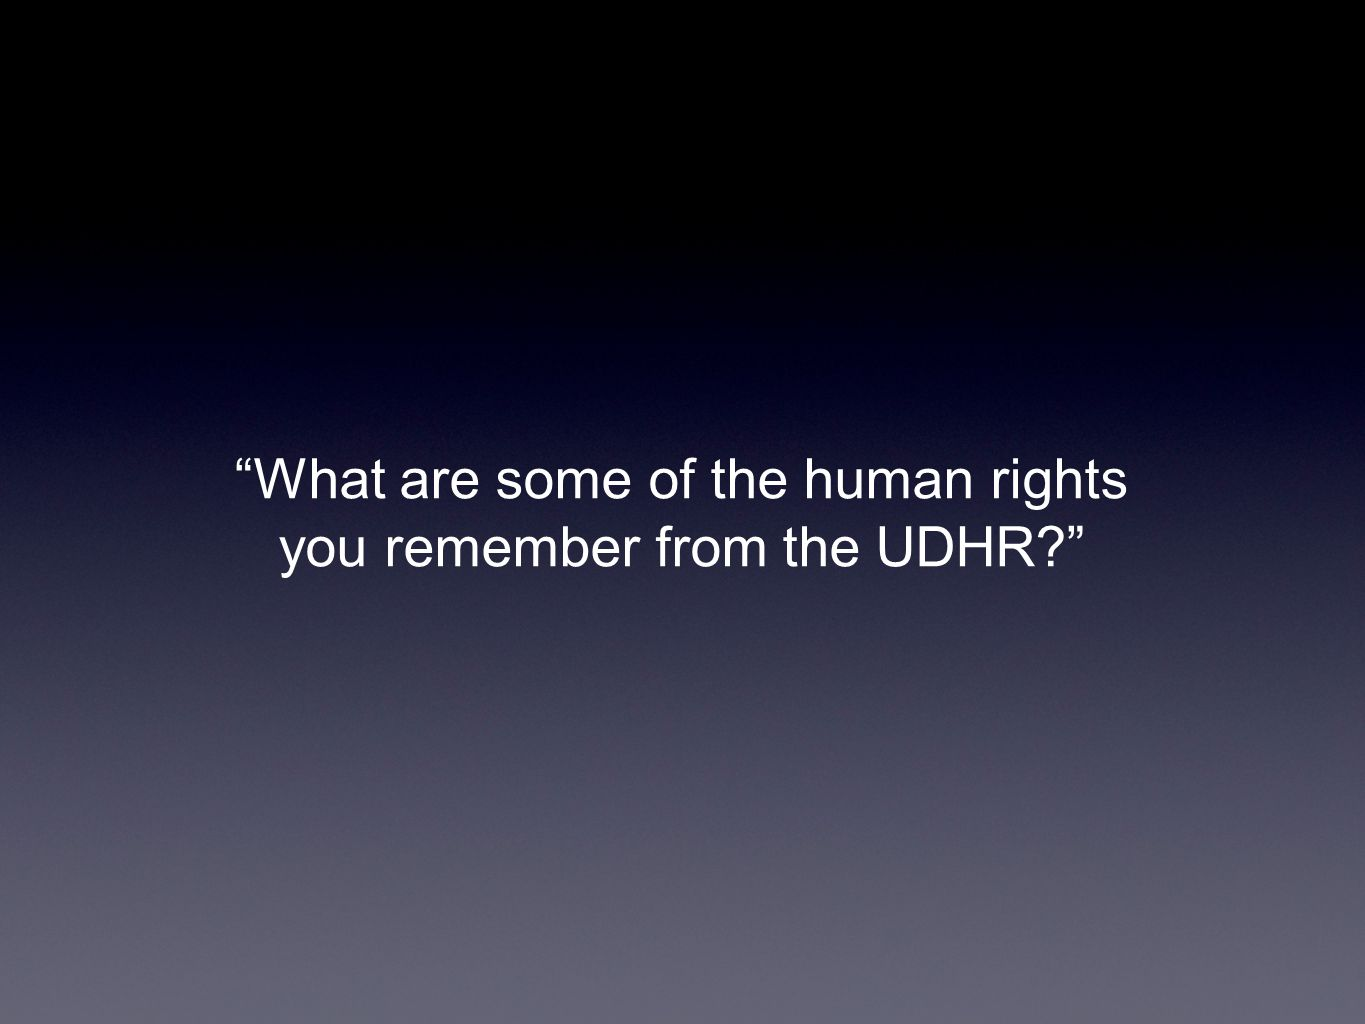 What are some of the human rights you remember from the UDHR